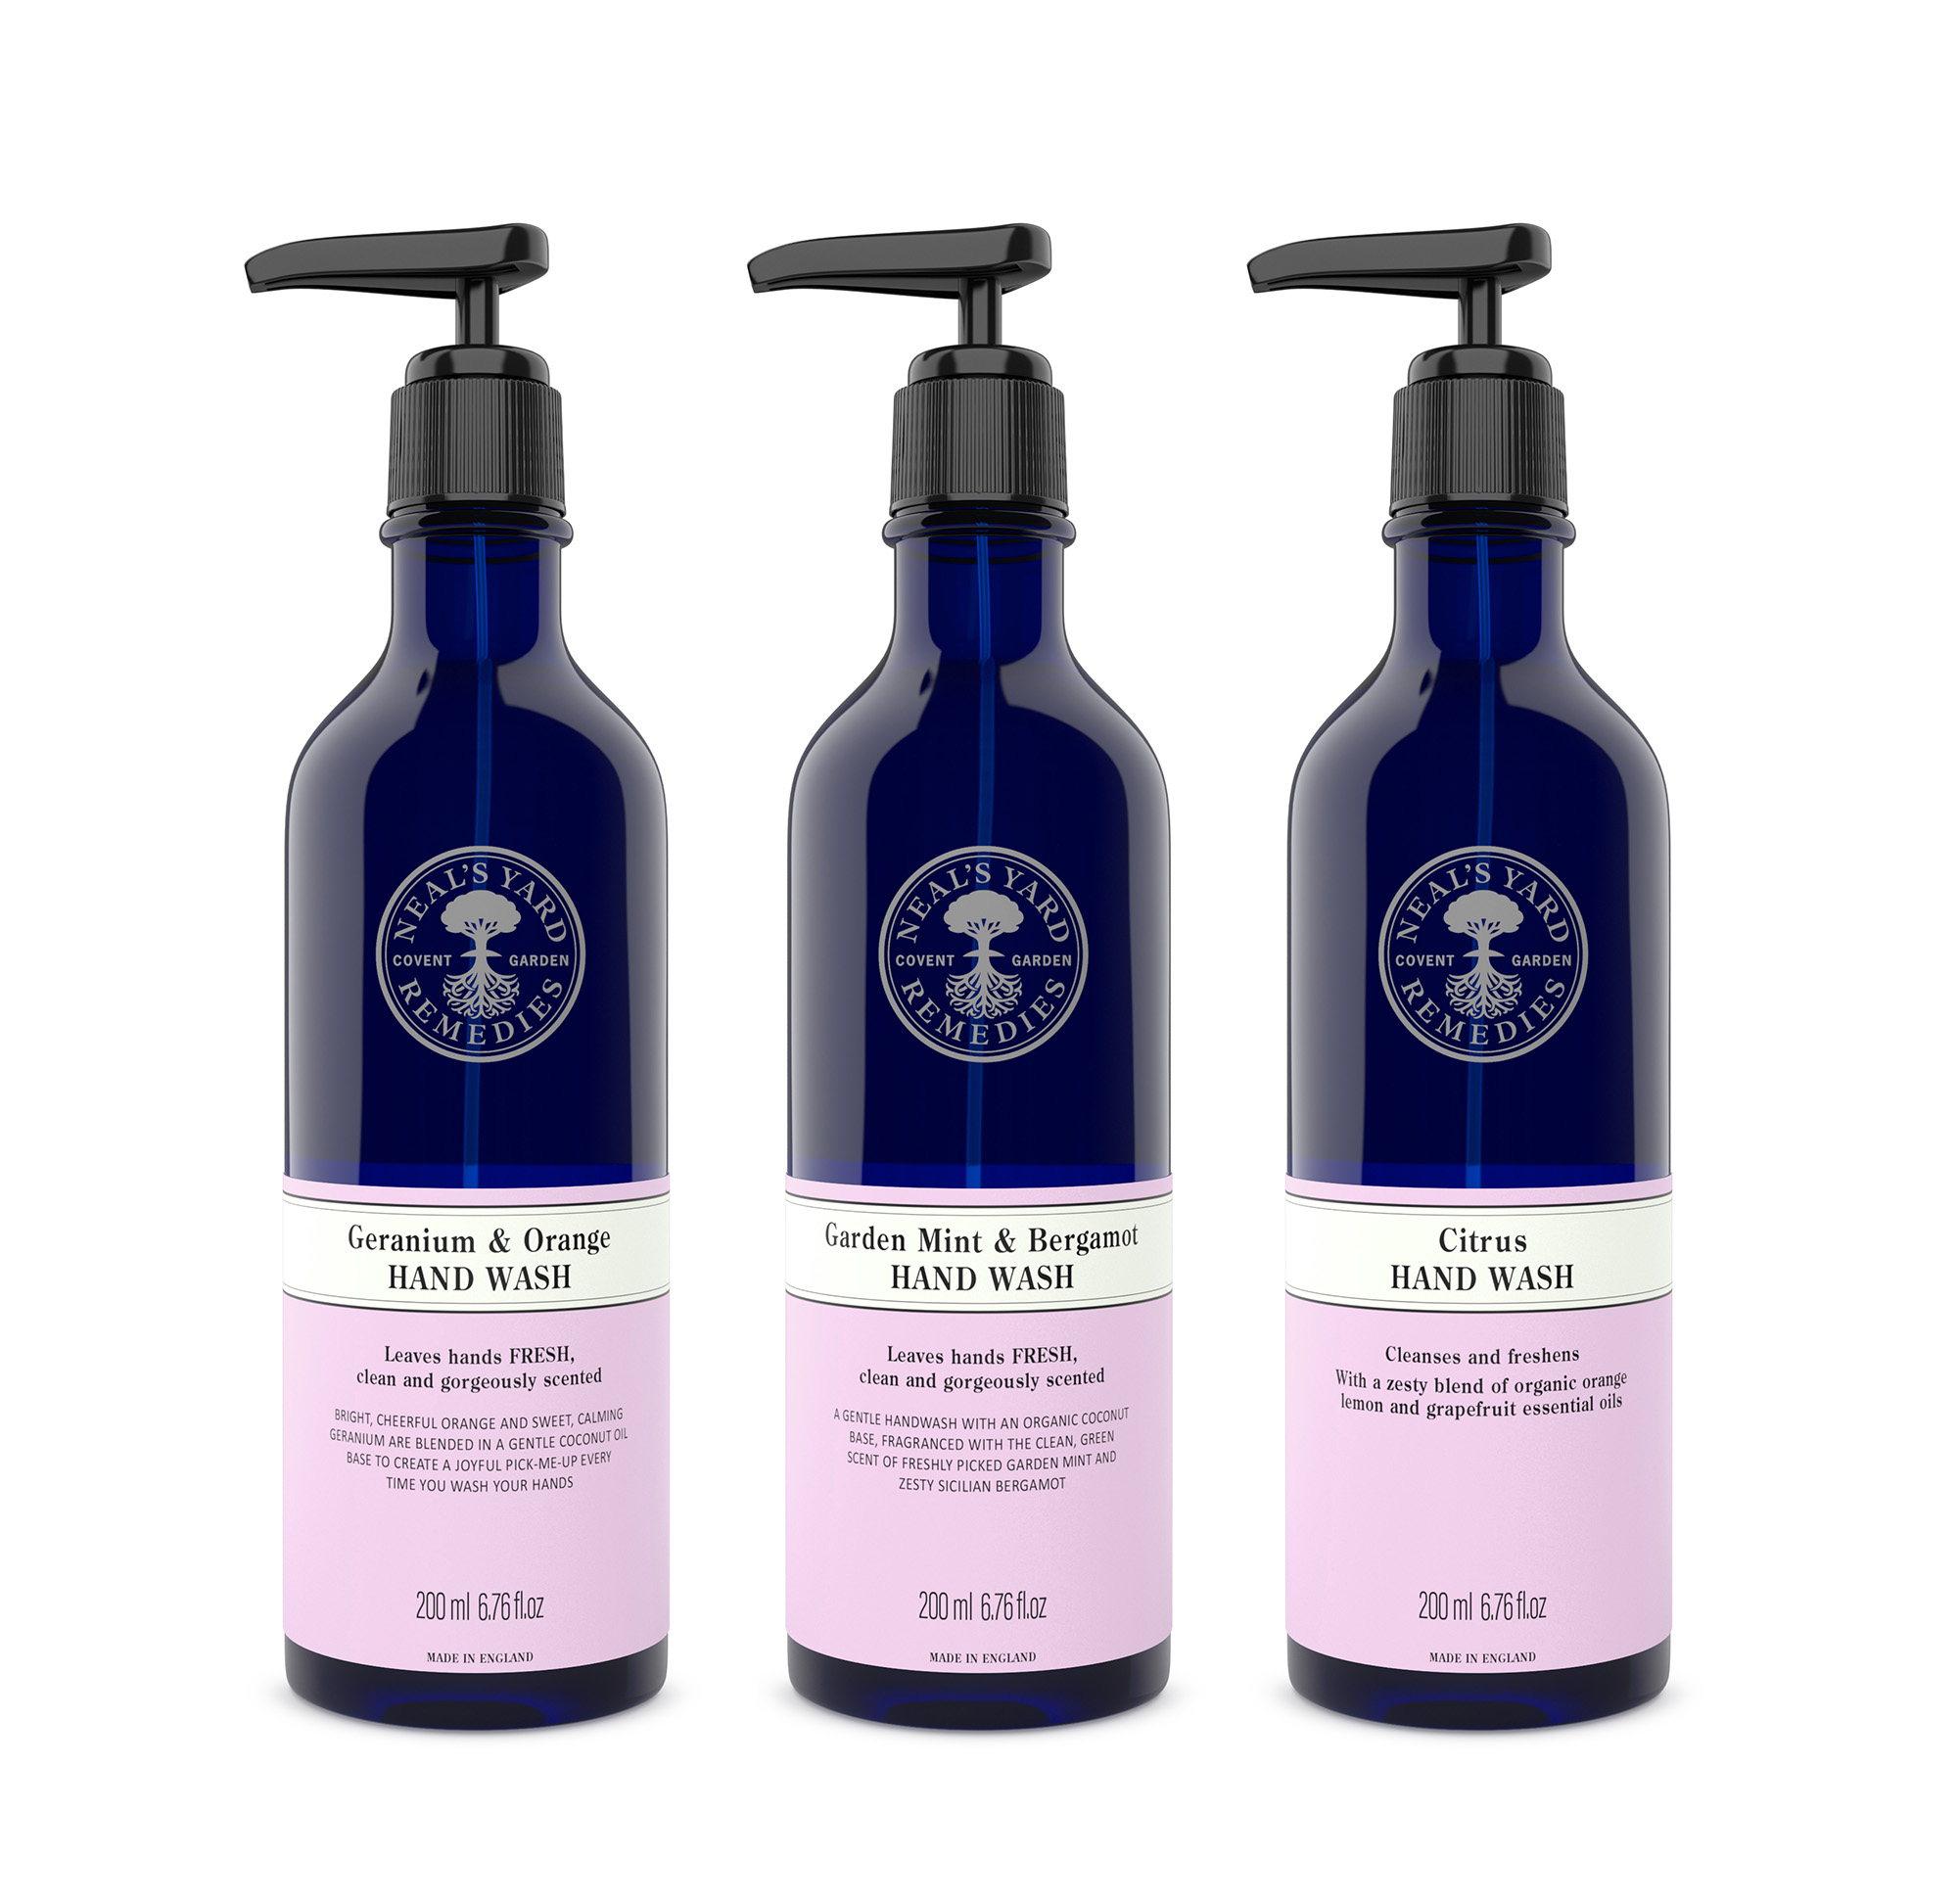 CGI Product photograph of Neal's Yard soaps